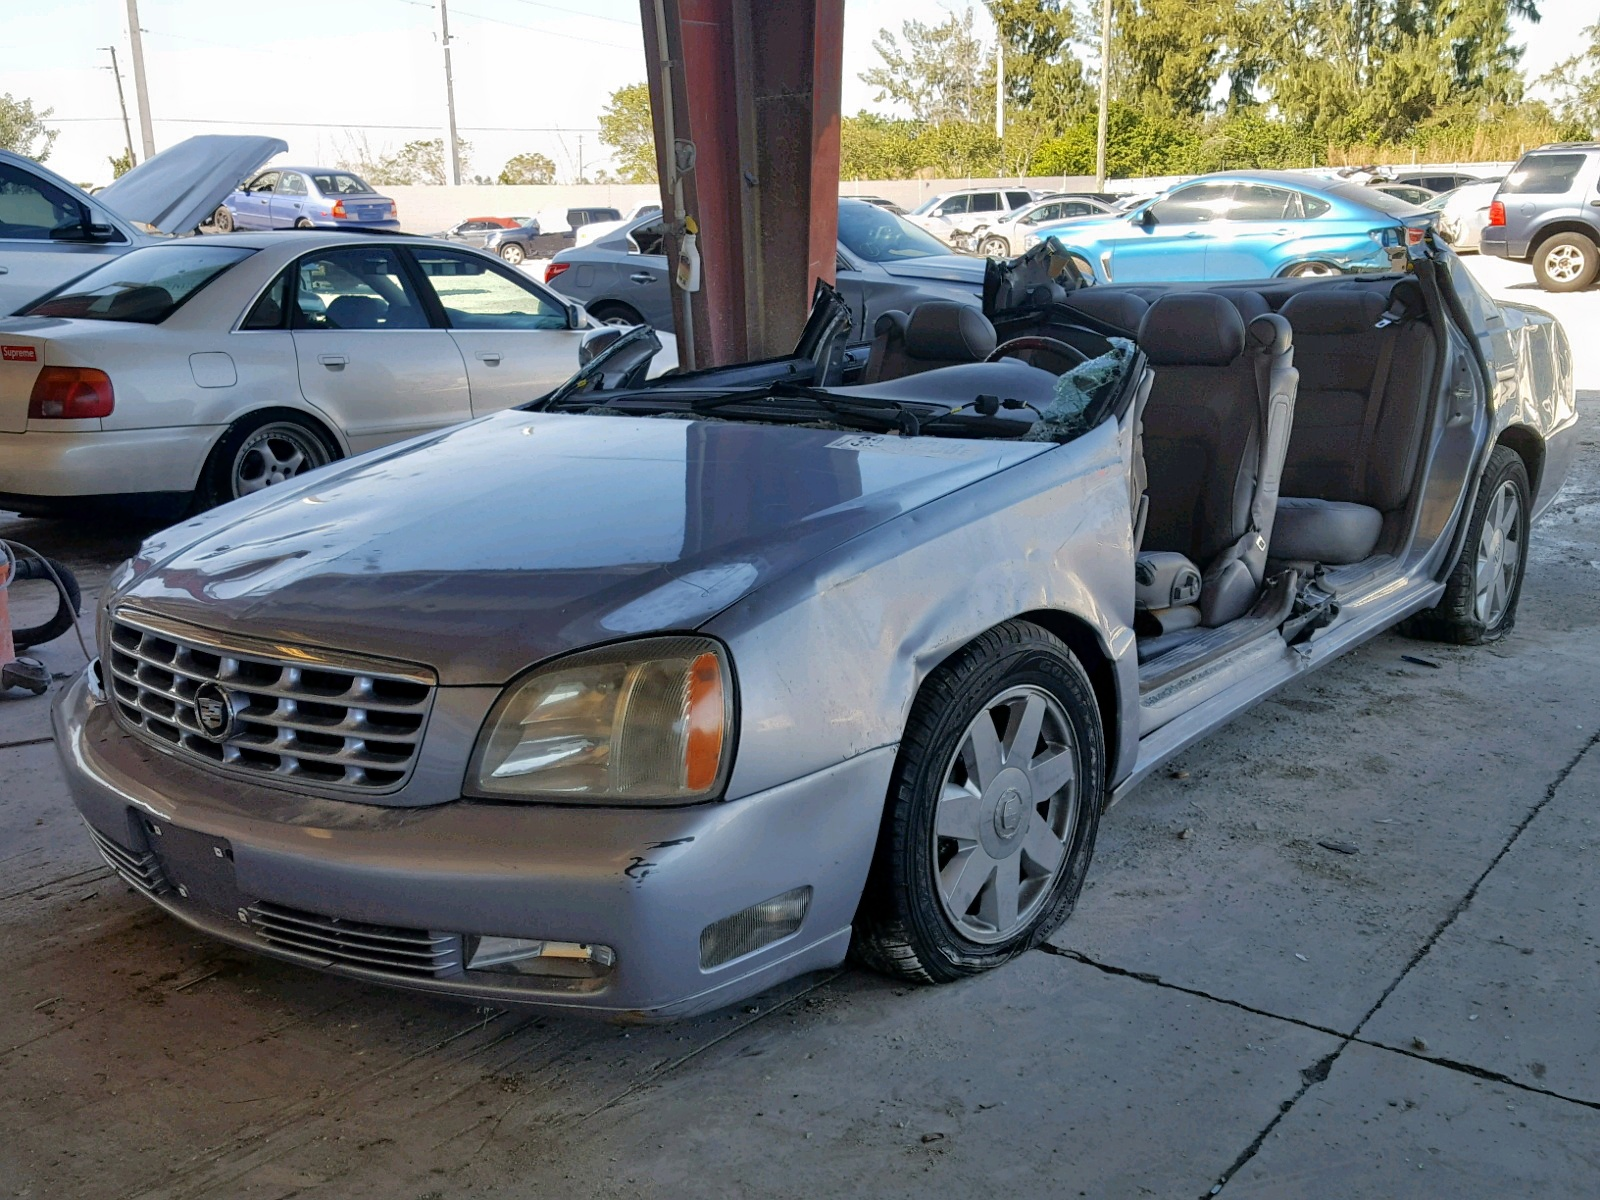 hight resolution of  2005 cadillac deville dt 4 6l right view